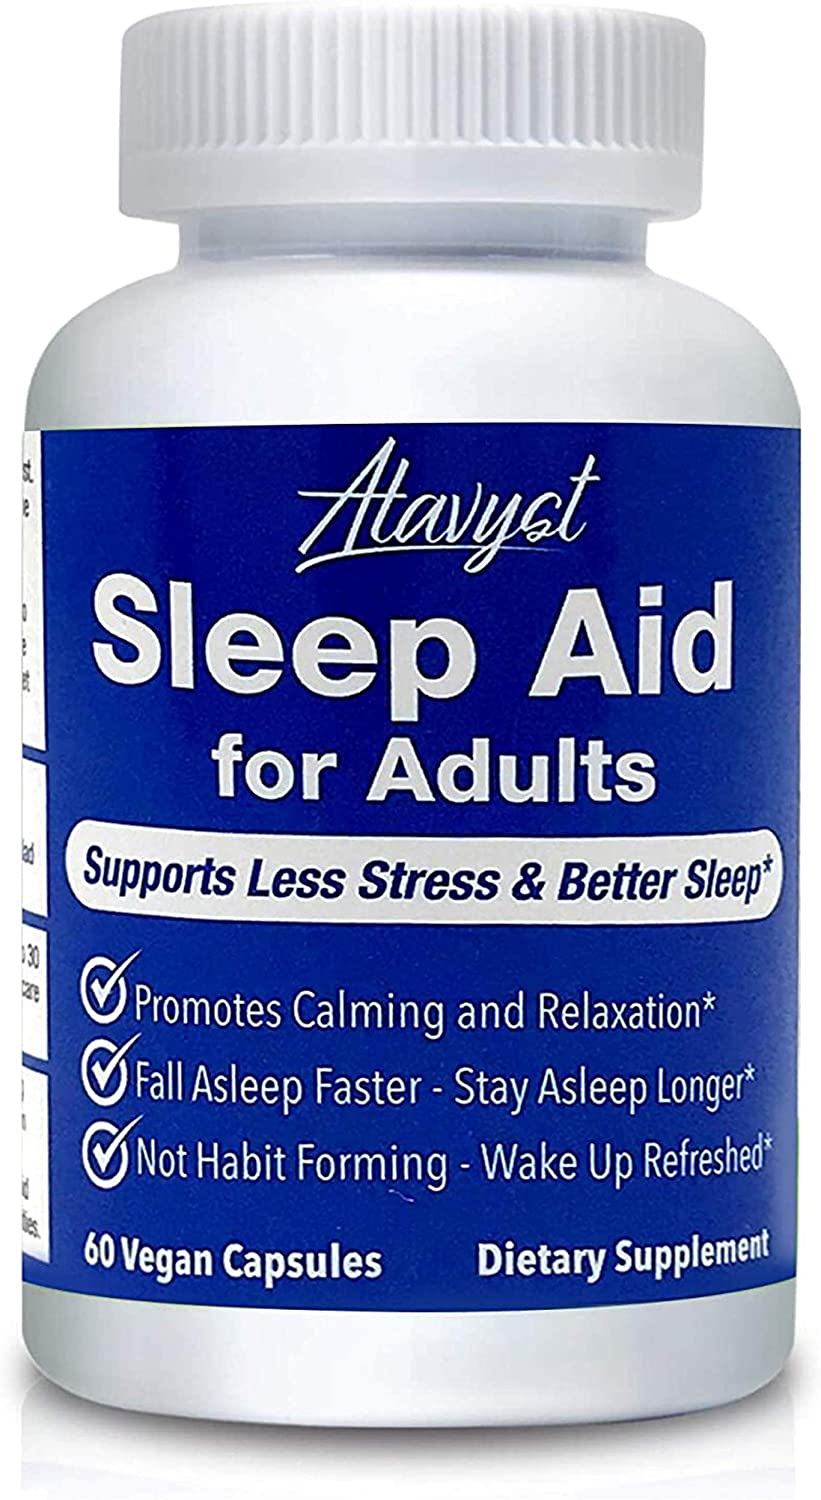 Atavyst Sleep Aid for Adults - Supports Relaxation, Calming and Sleep - Valerian Root, L-Theanine, Melatonin and GABA - Includes Extracts of Chamomile, Passion Flower, Lemon Balm and Hops: Health & Personal Care